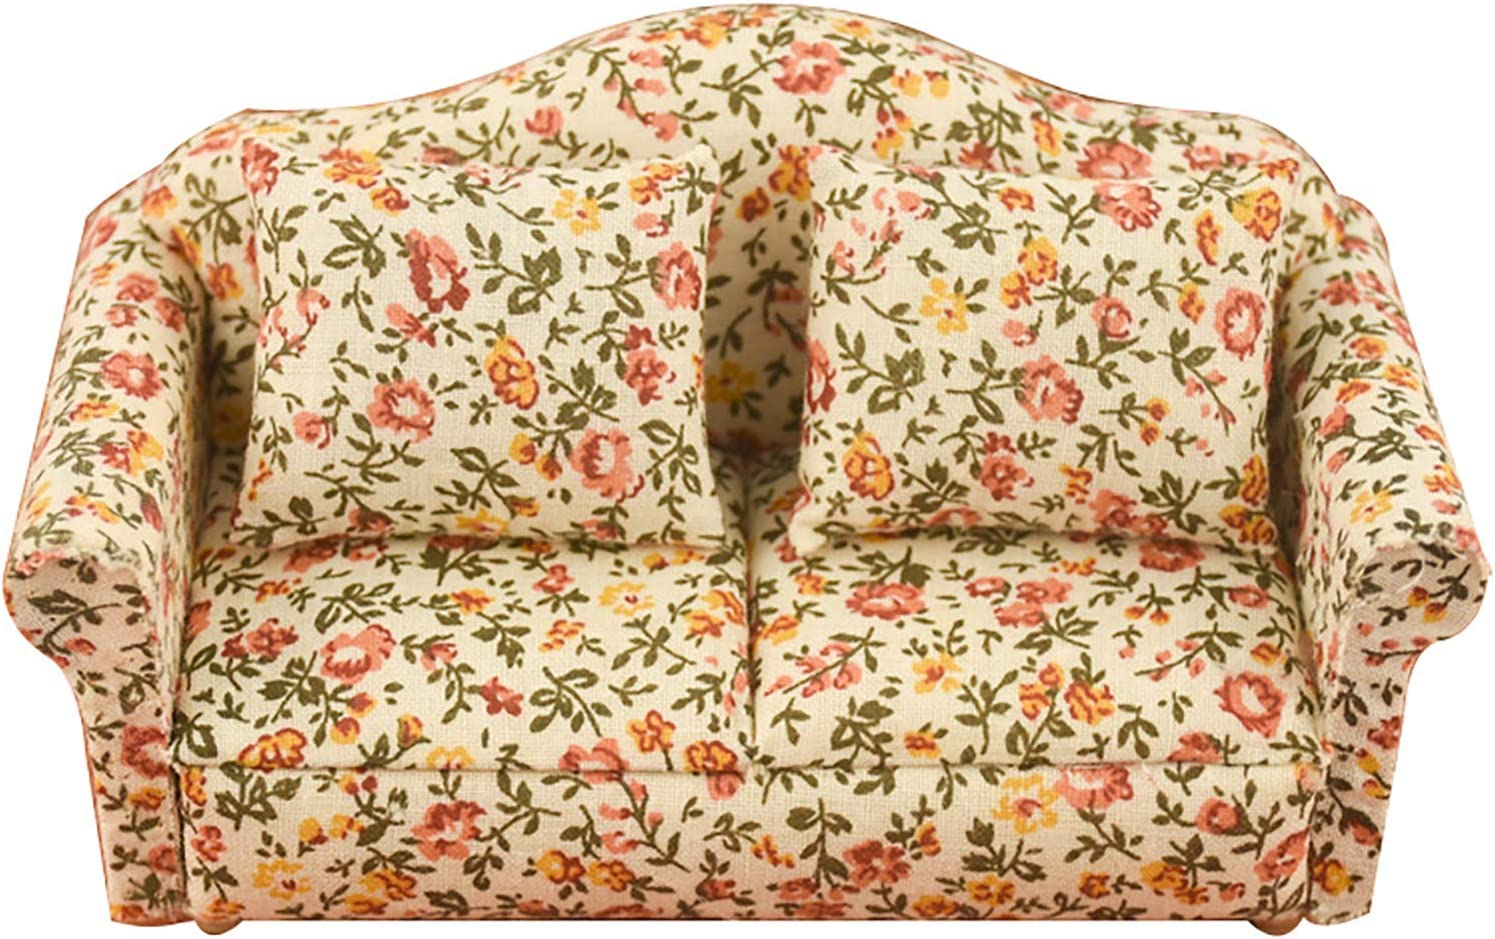 Gaweb Ornaments, Wooden Scale 1:12 Country Style Floral Pattern Dollhouse Sofa Model for Decor A One Size